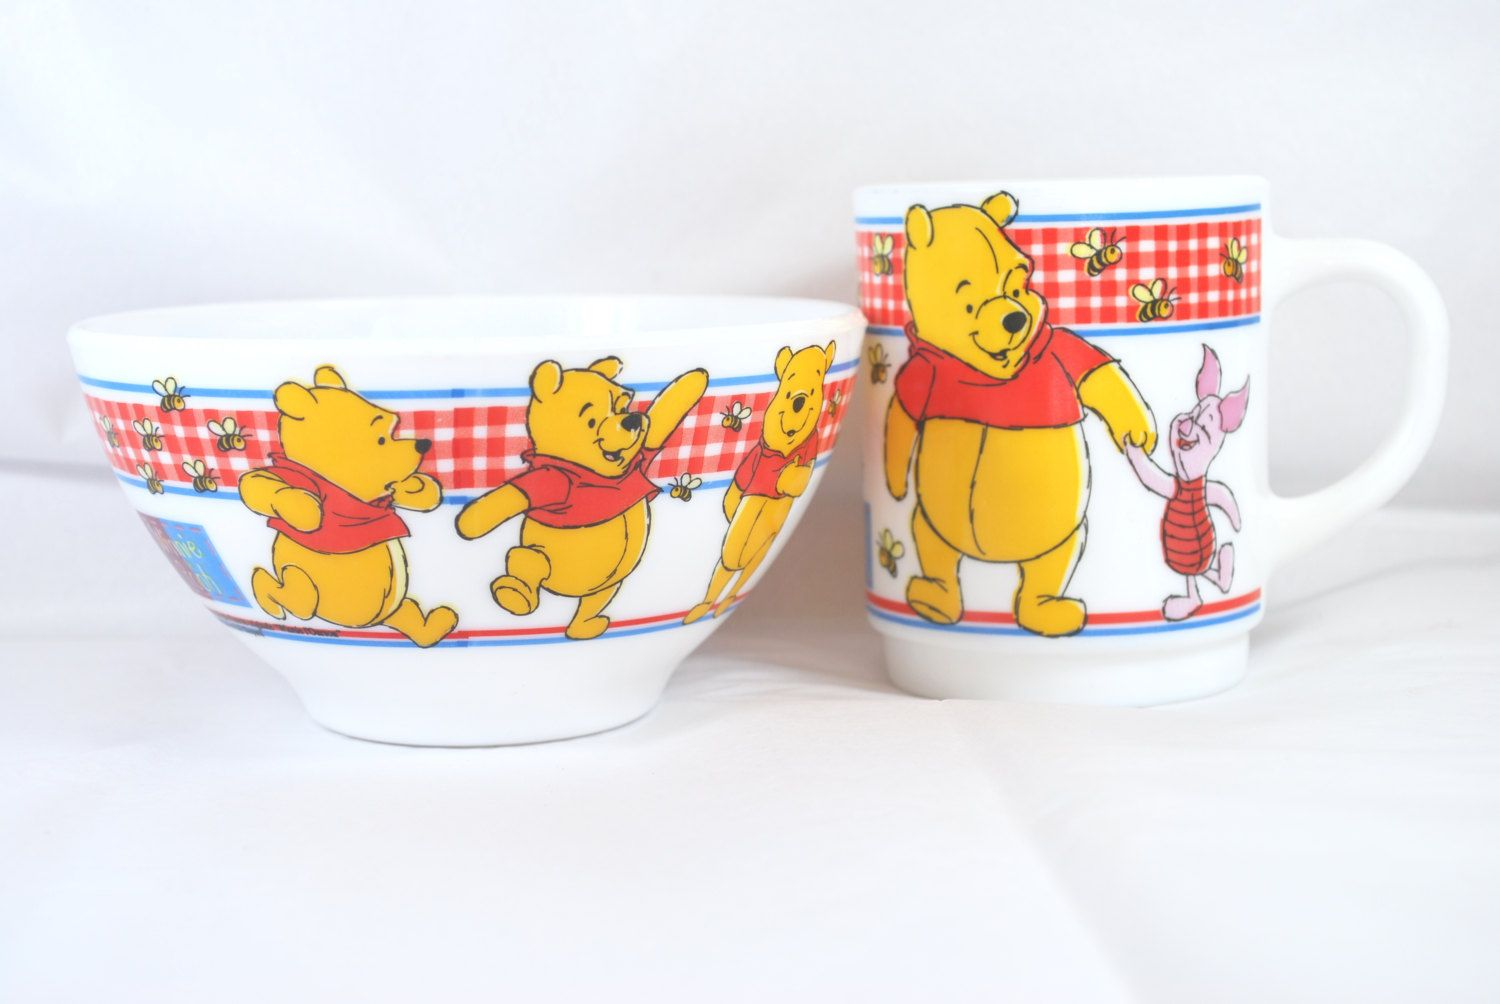 Bol et Tasse Winnie the Pooh , Ensemble de Vaisselle pour Enfants Arcopal by Dupasseaupresent on Etsy